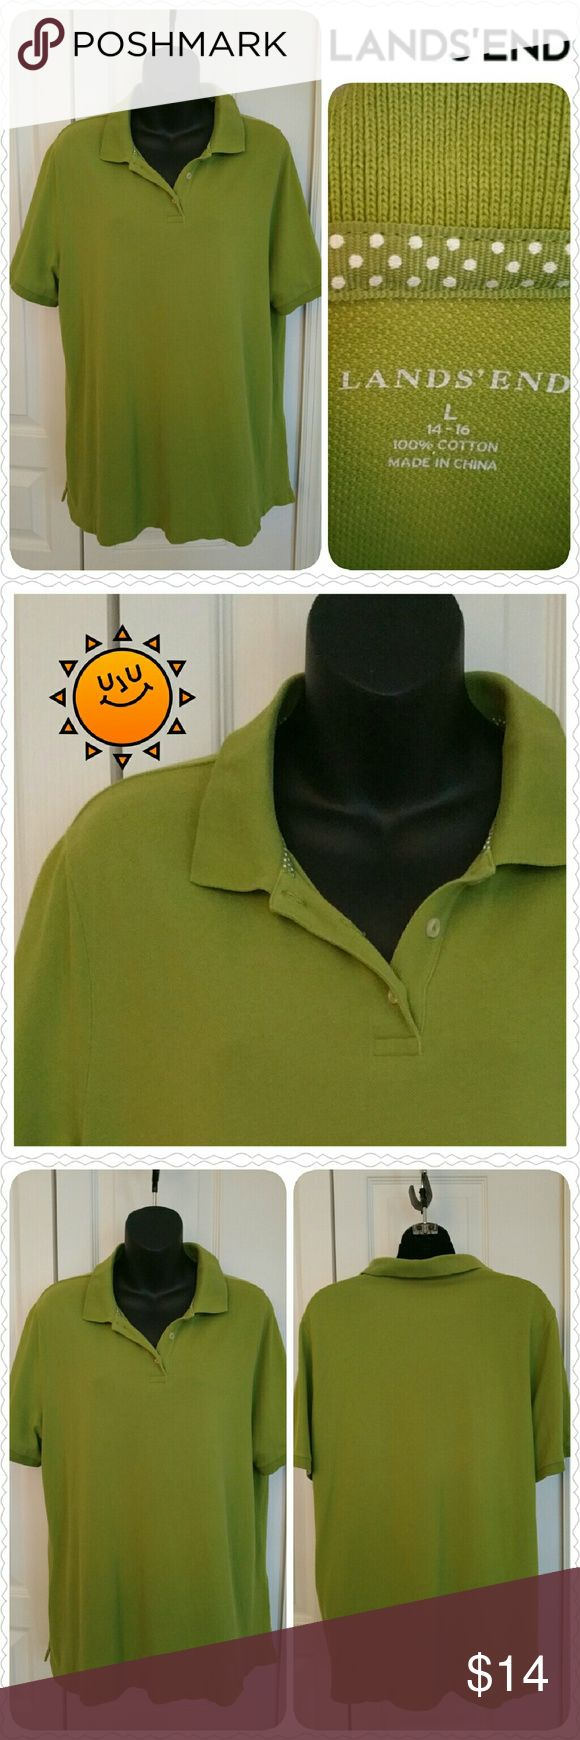 "Lands' End Polo, excellent condition (no flaws) Lands' End short-sleeved polo shirt (ladies) * Size Large (14-16) * 100% cotton  * Color: olive green * Excellent condition with no flaws * Shoulders 17"", chest 46"" Lands' End Tops"